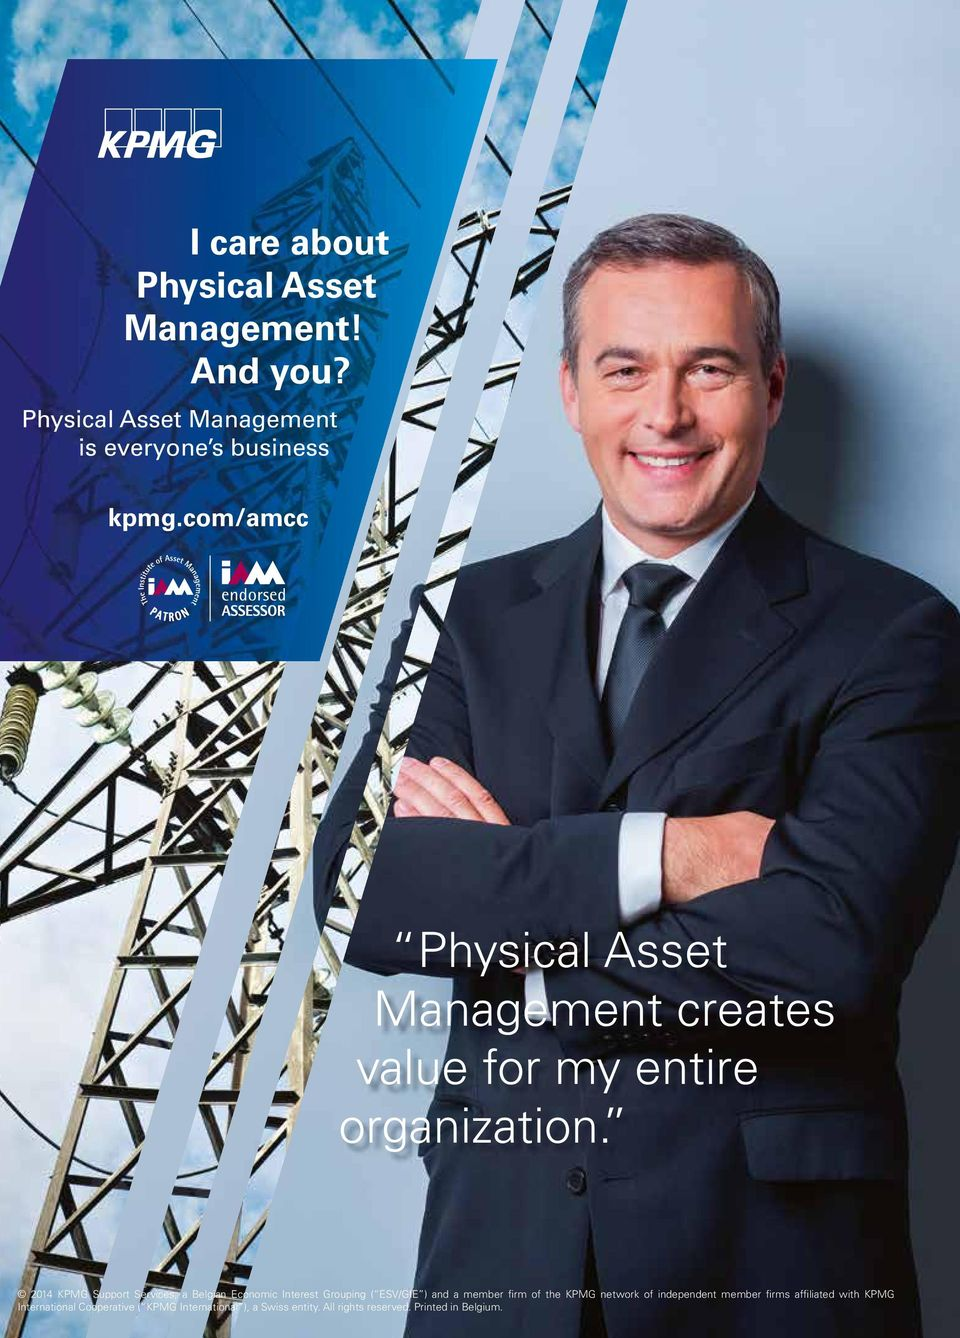 2014 KPMG Support Services, a Belgian Economic Interest Grouping ( ESV/GIE ) and a member firm of the KPMG network